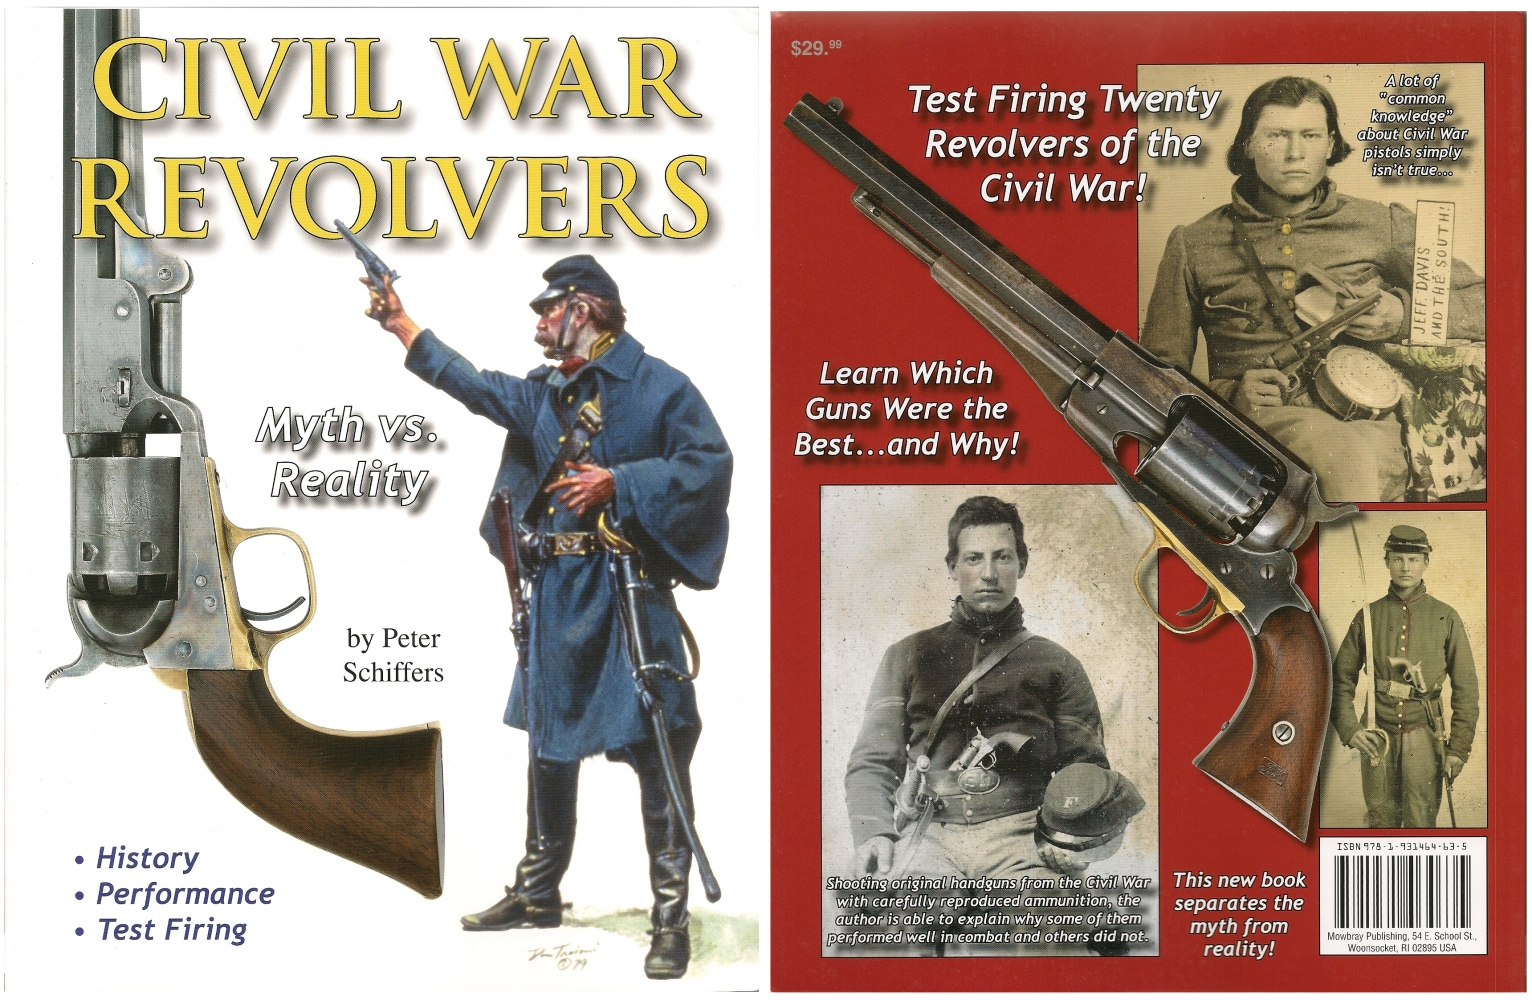 civil war myths vs facts Myths vs facts : the deduction for state and local taxes (salt) oct 2, 2017 tags: tax & finance  even the federal civil war tax in 1862 included a deduction for salt myth: the deduction for state and local taxes is one of the largest expenditures in the tax code.